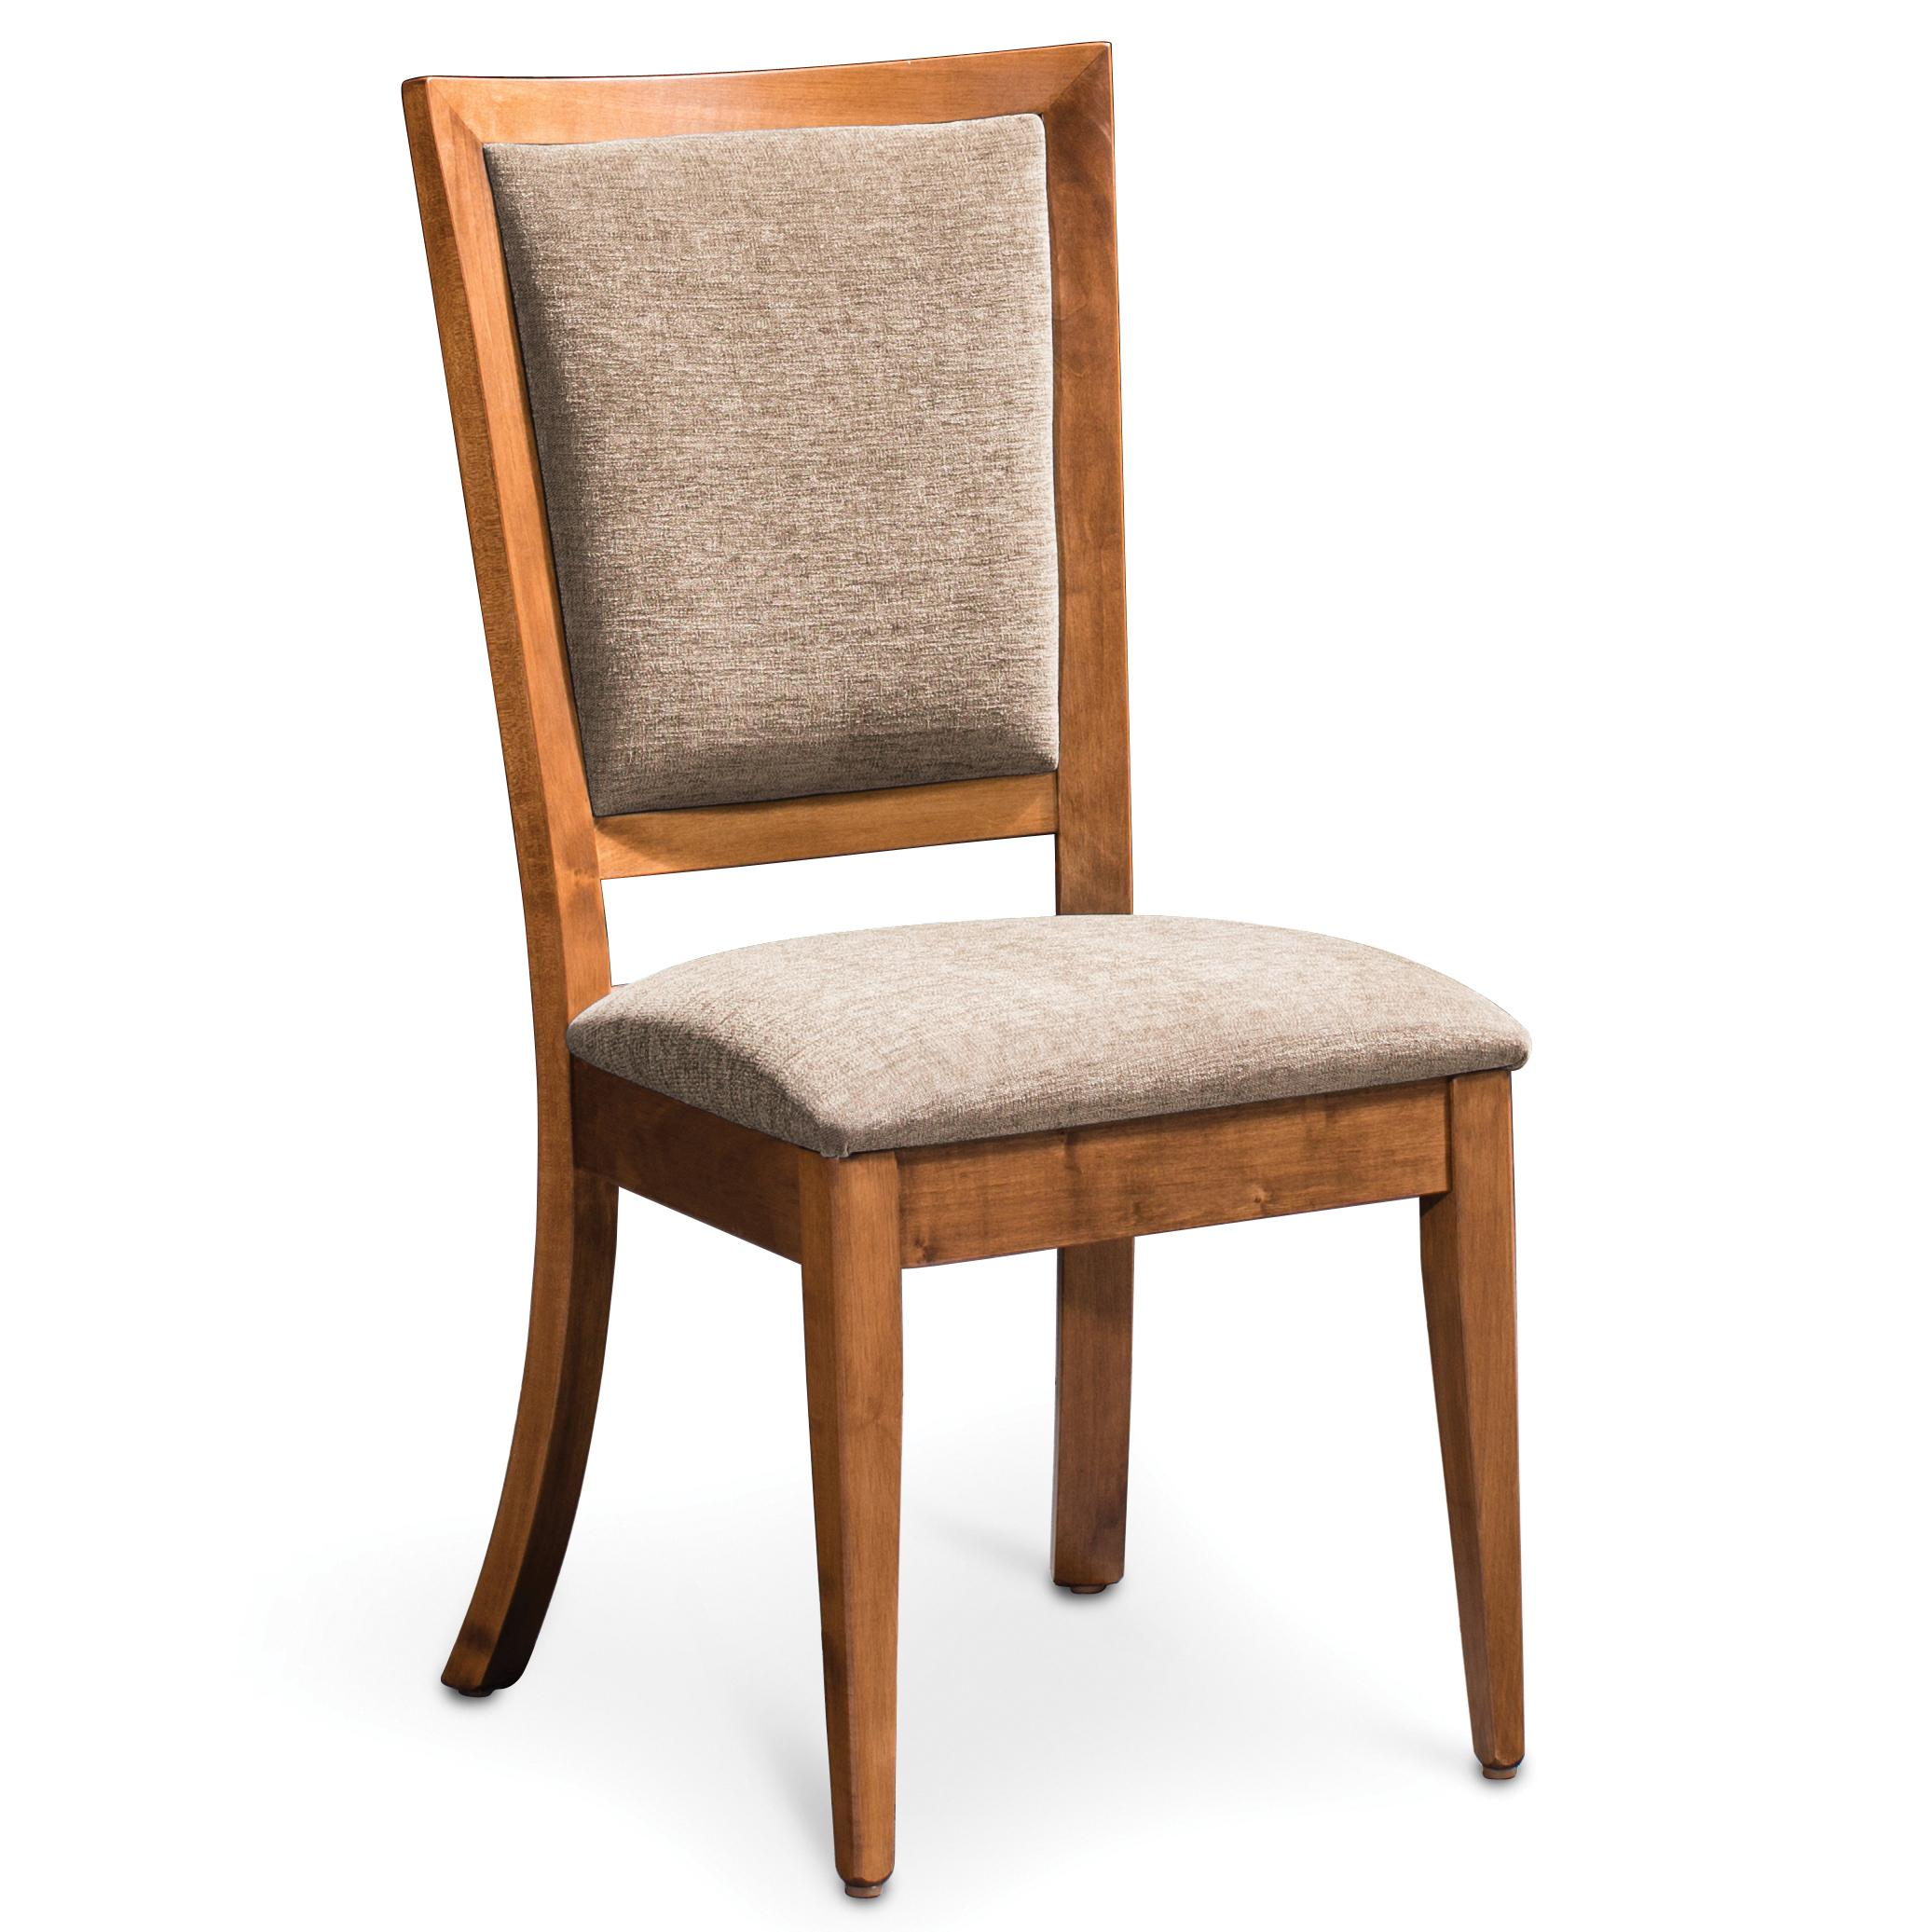 Simply Amish Studio Riverton Side Chair - Item Number: ECRIV-02A-F0608-S28